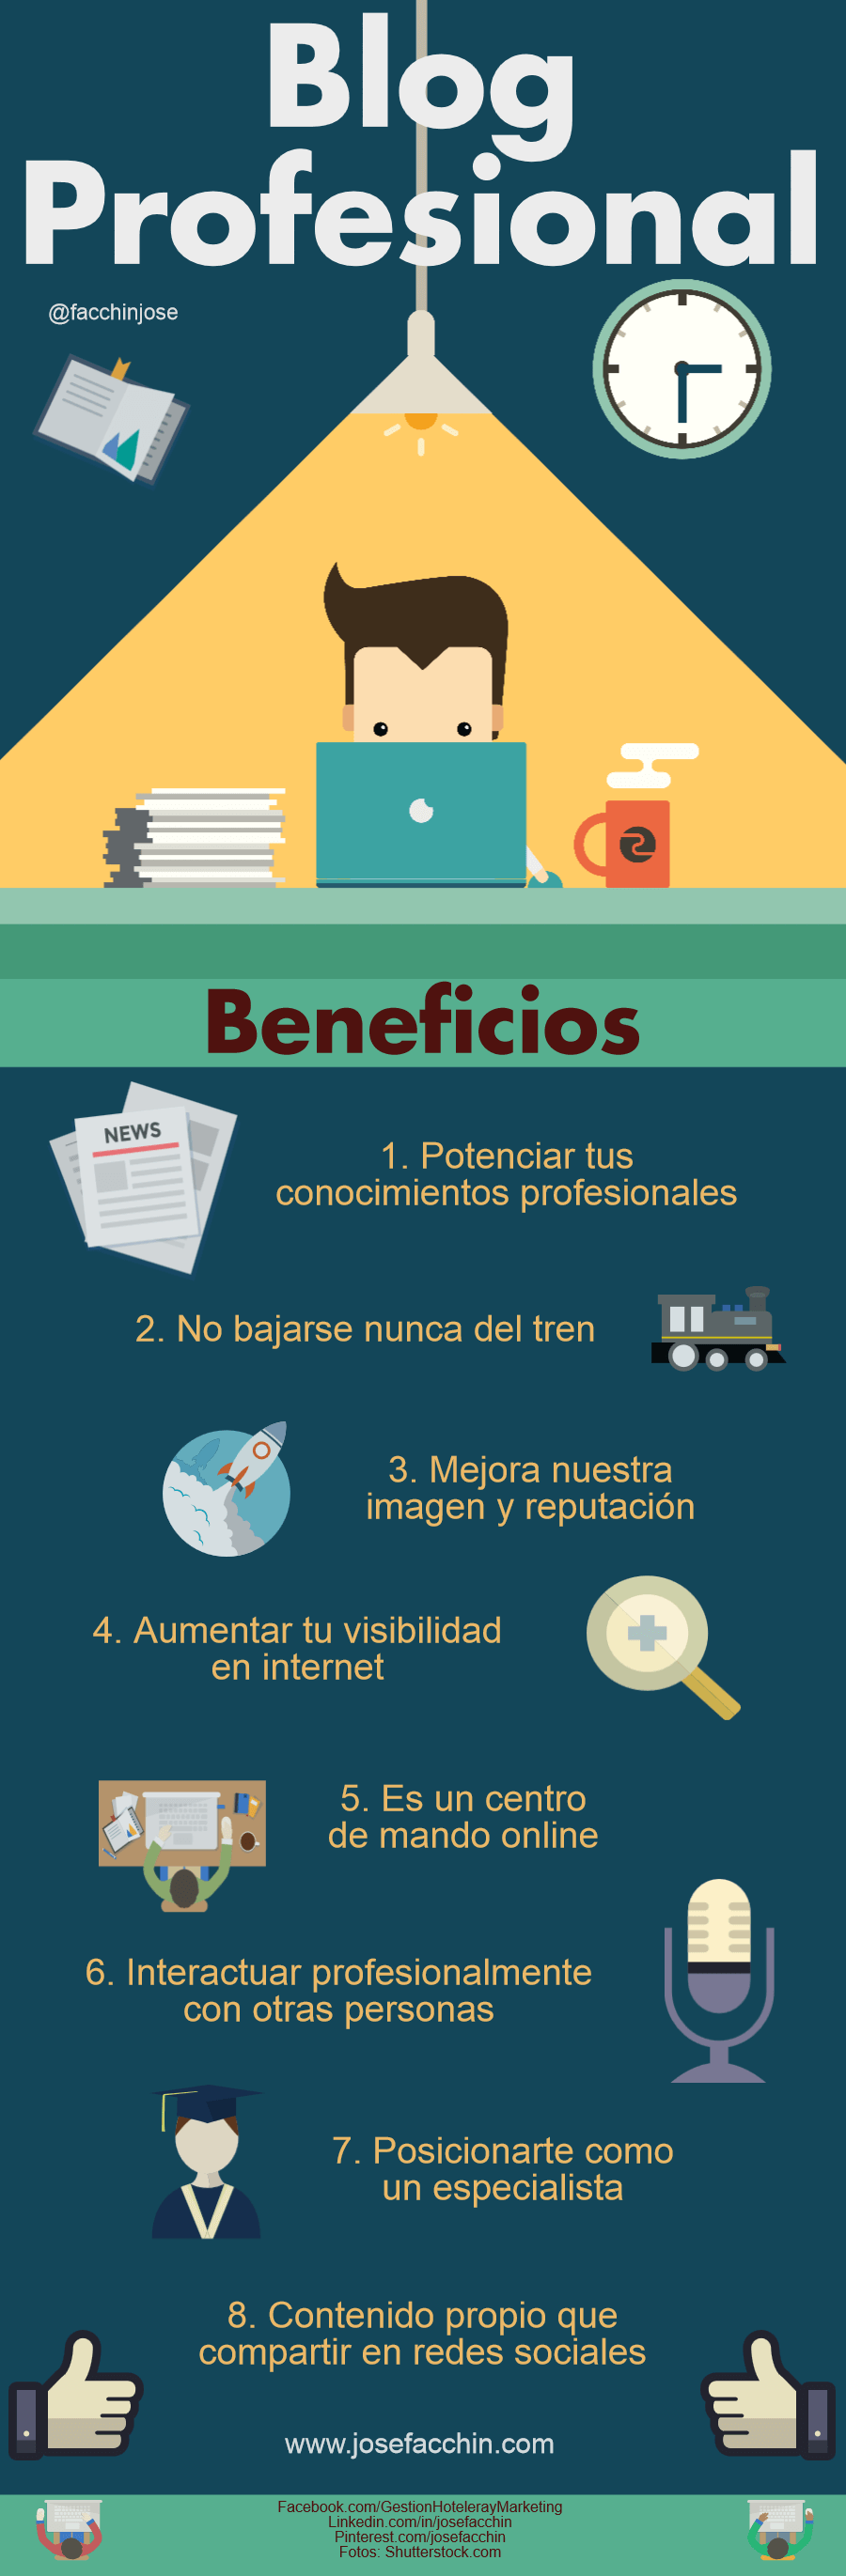 8 Beneficios que obtendremos de un Blog Profesional